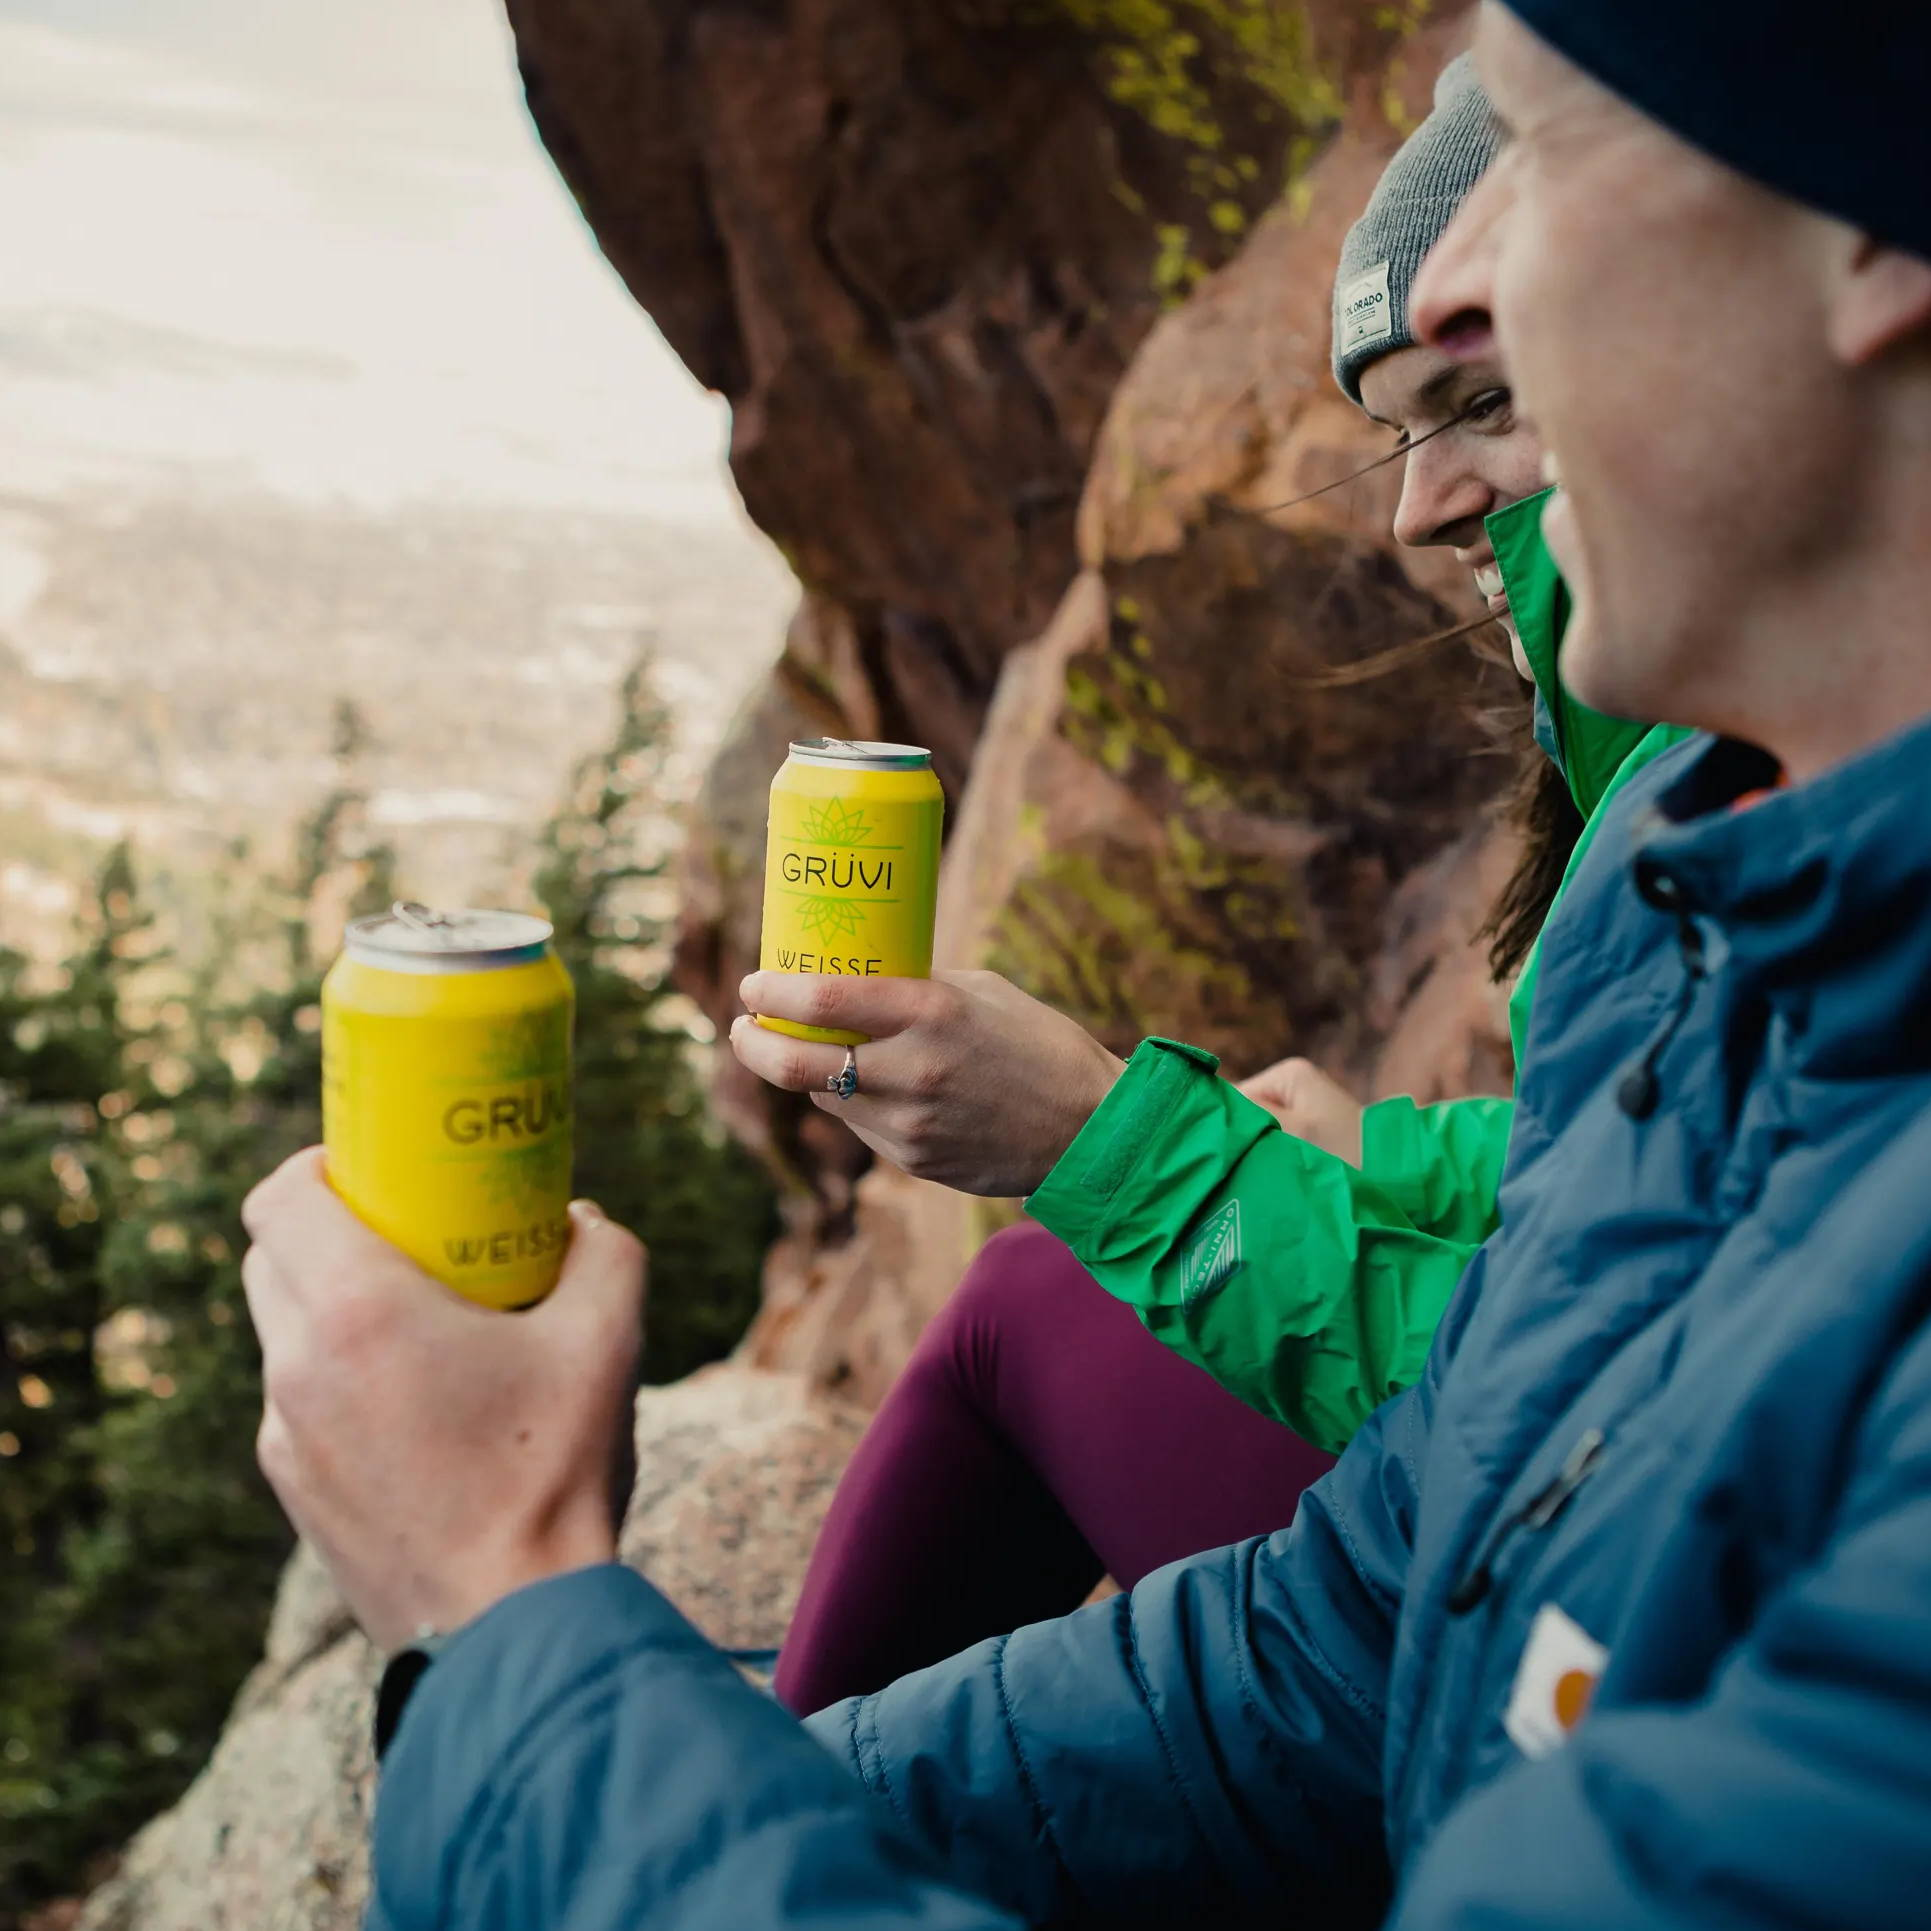 Two friends smiling as they sit on top of a mountain overlook, each holding a can of Grüvi.